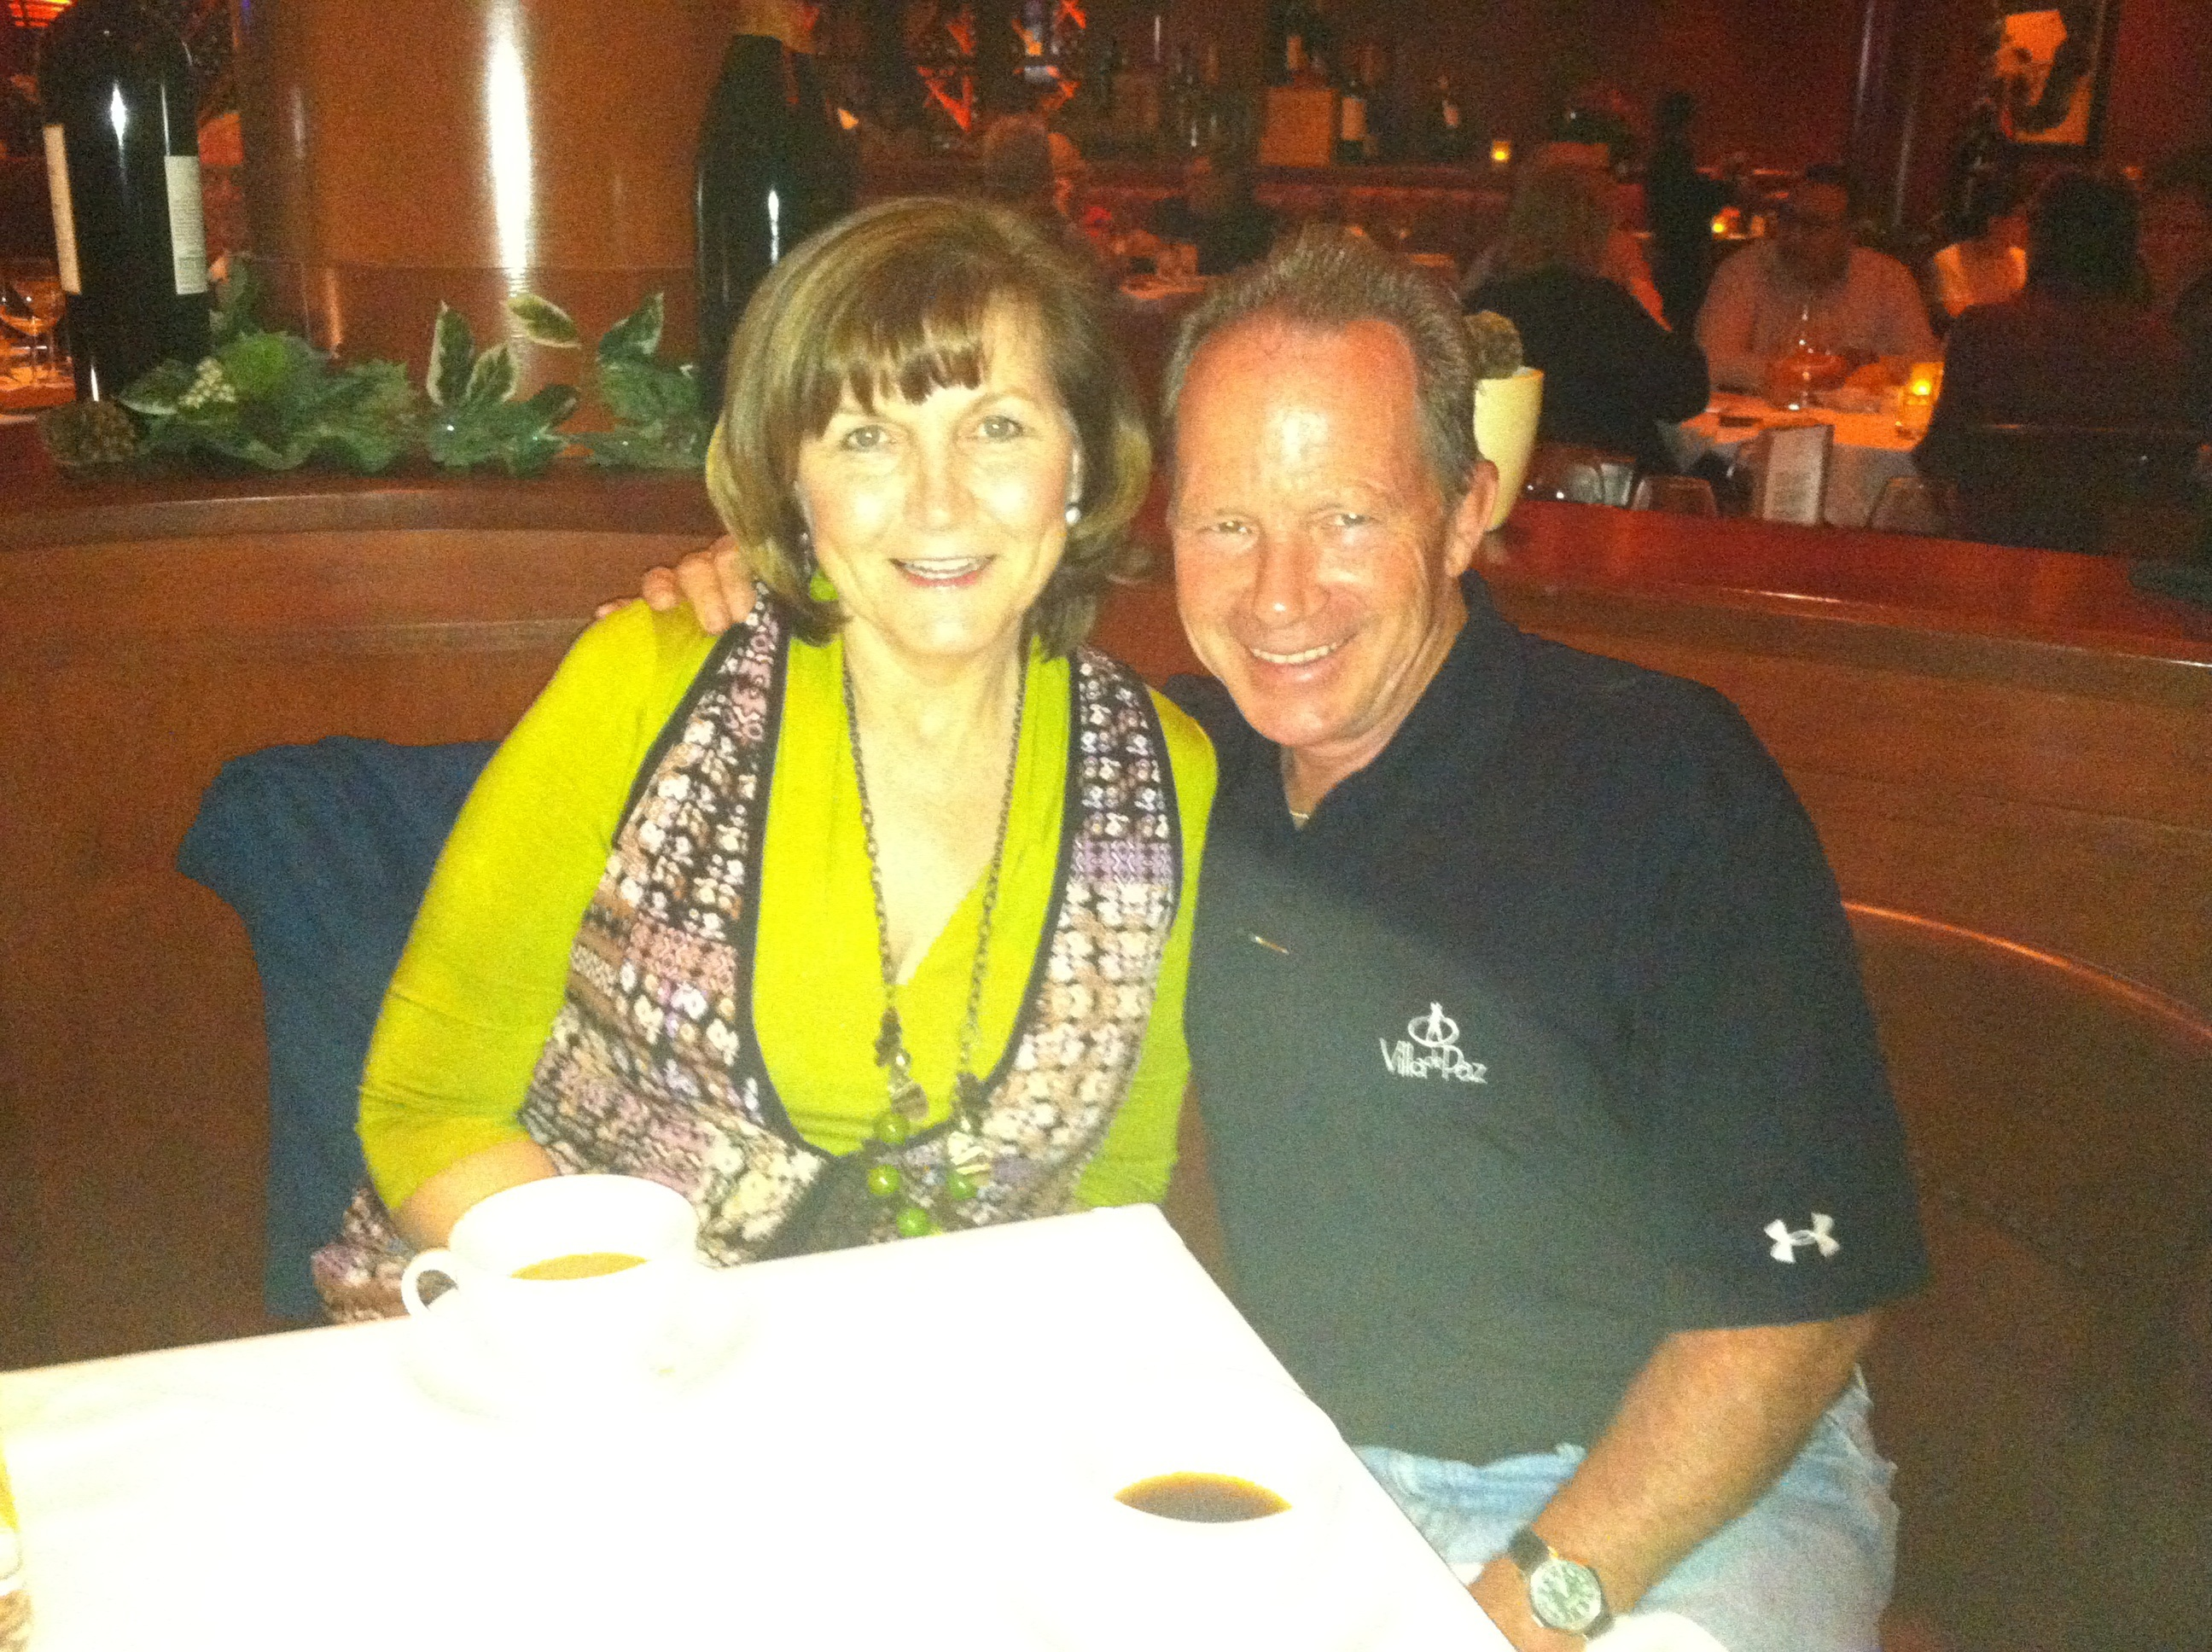 Tom and Nancy enjoying dinner at Flemings, a local restaurant in Glendale, Arizona.